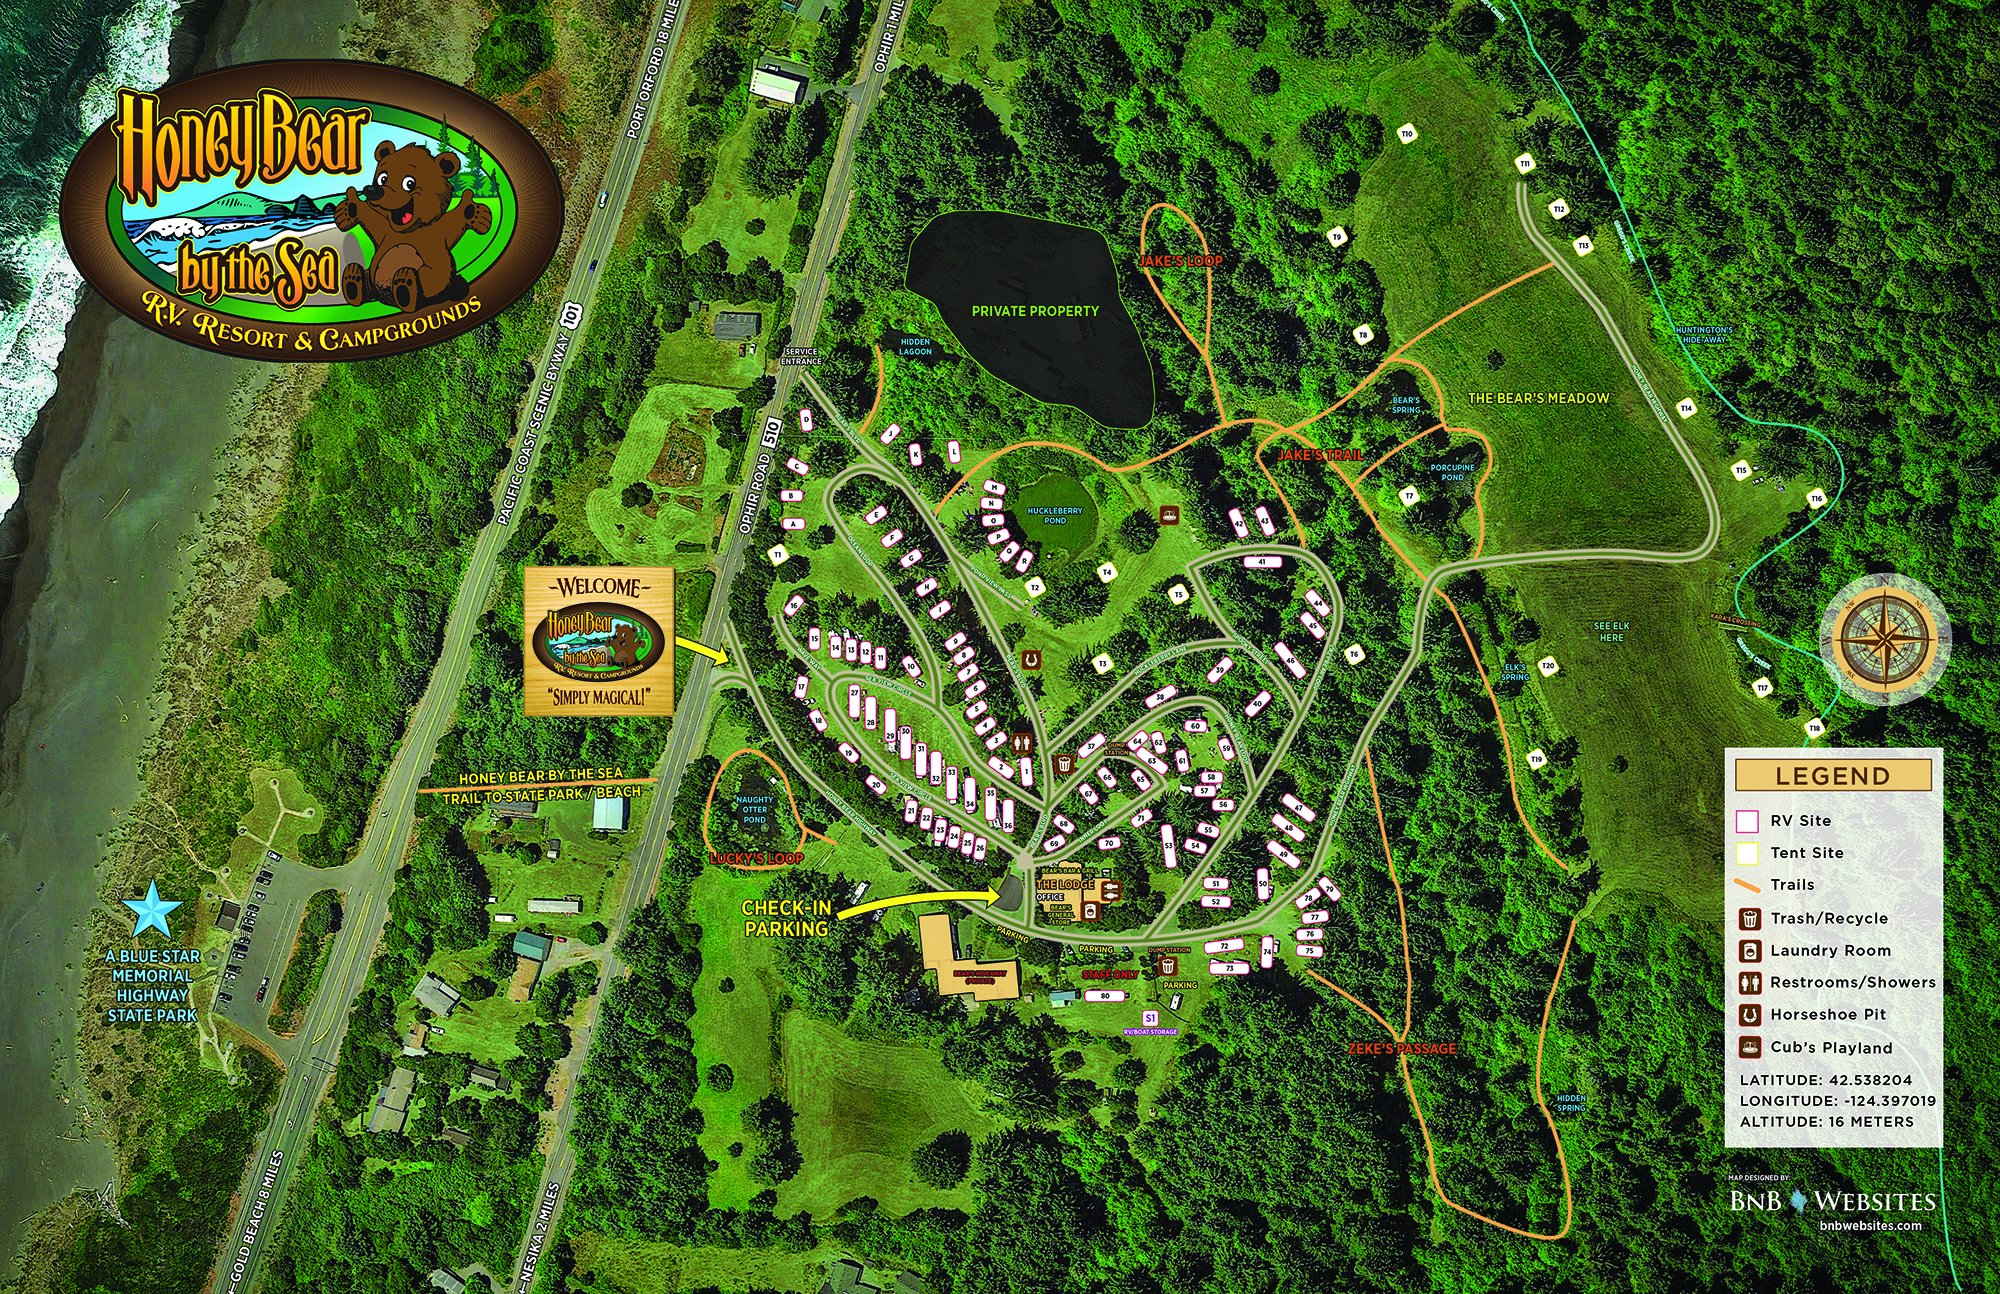 Map of Honey Bear by the Sea RV Resort and Campground